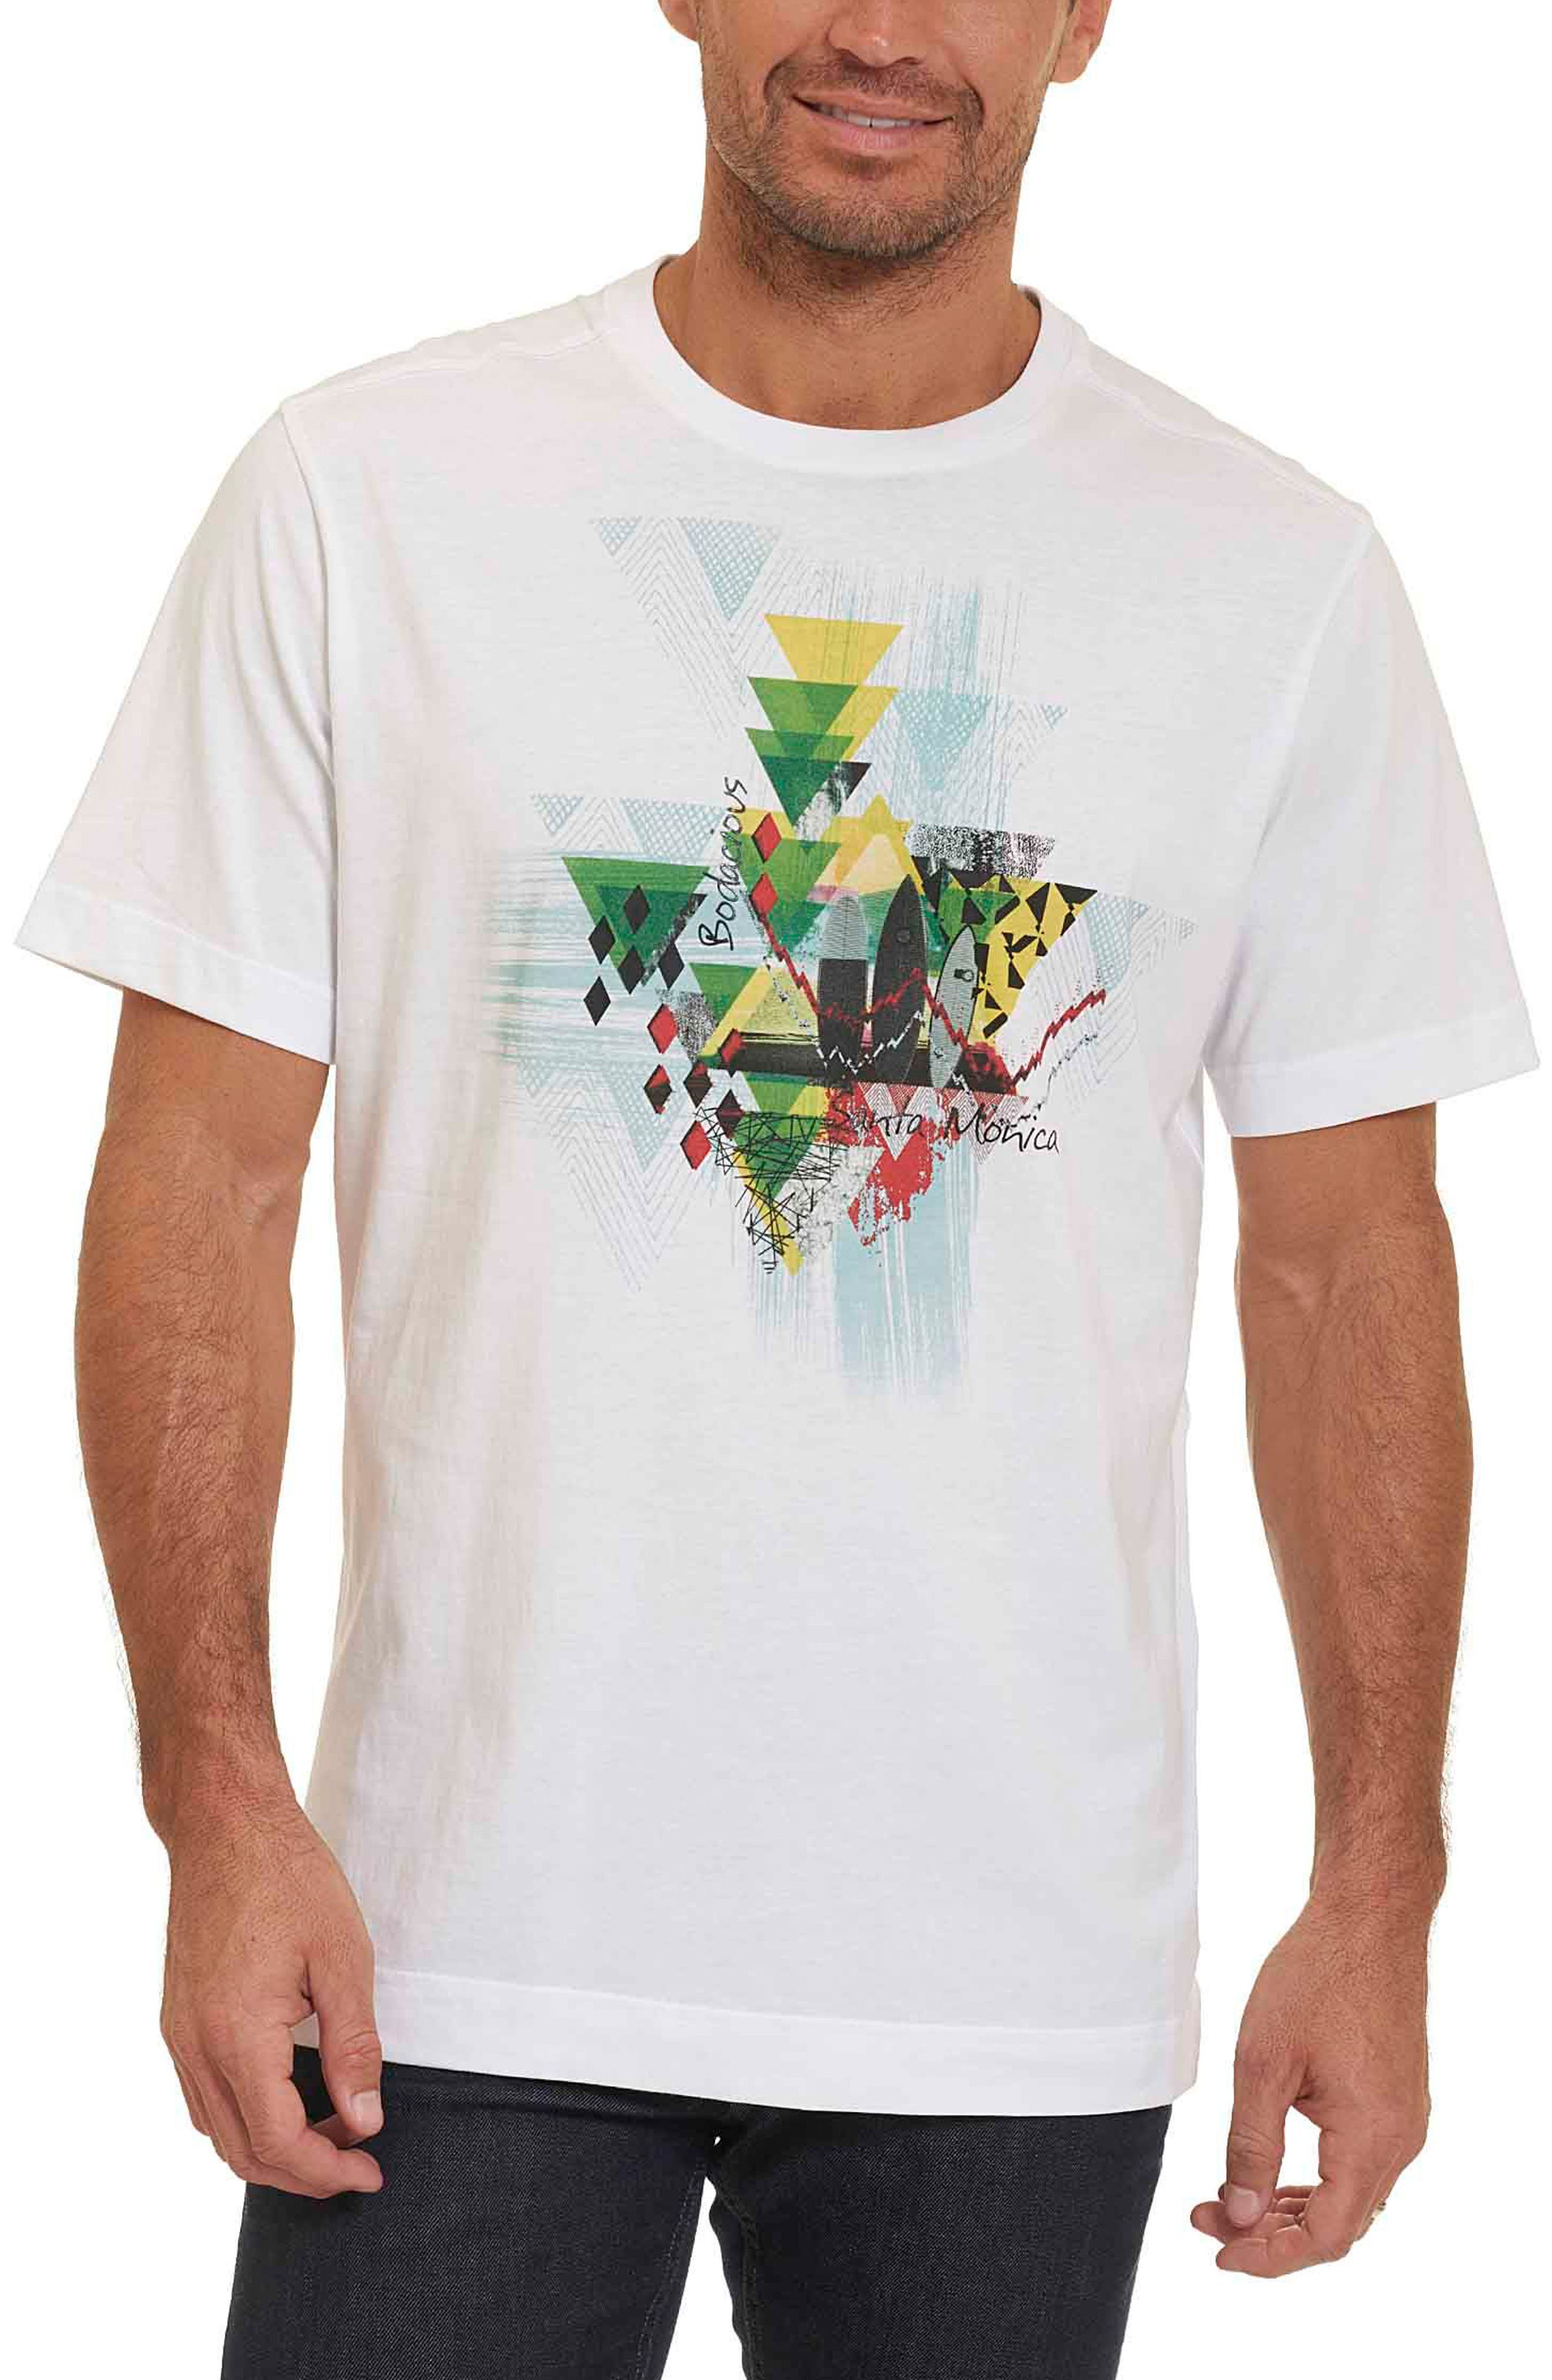 Alternate Image 1 Selected - Robert Graham Monica Pier Classic Fit Graphic T-Shirt